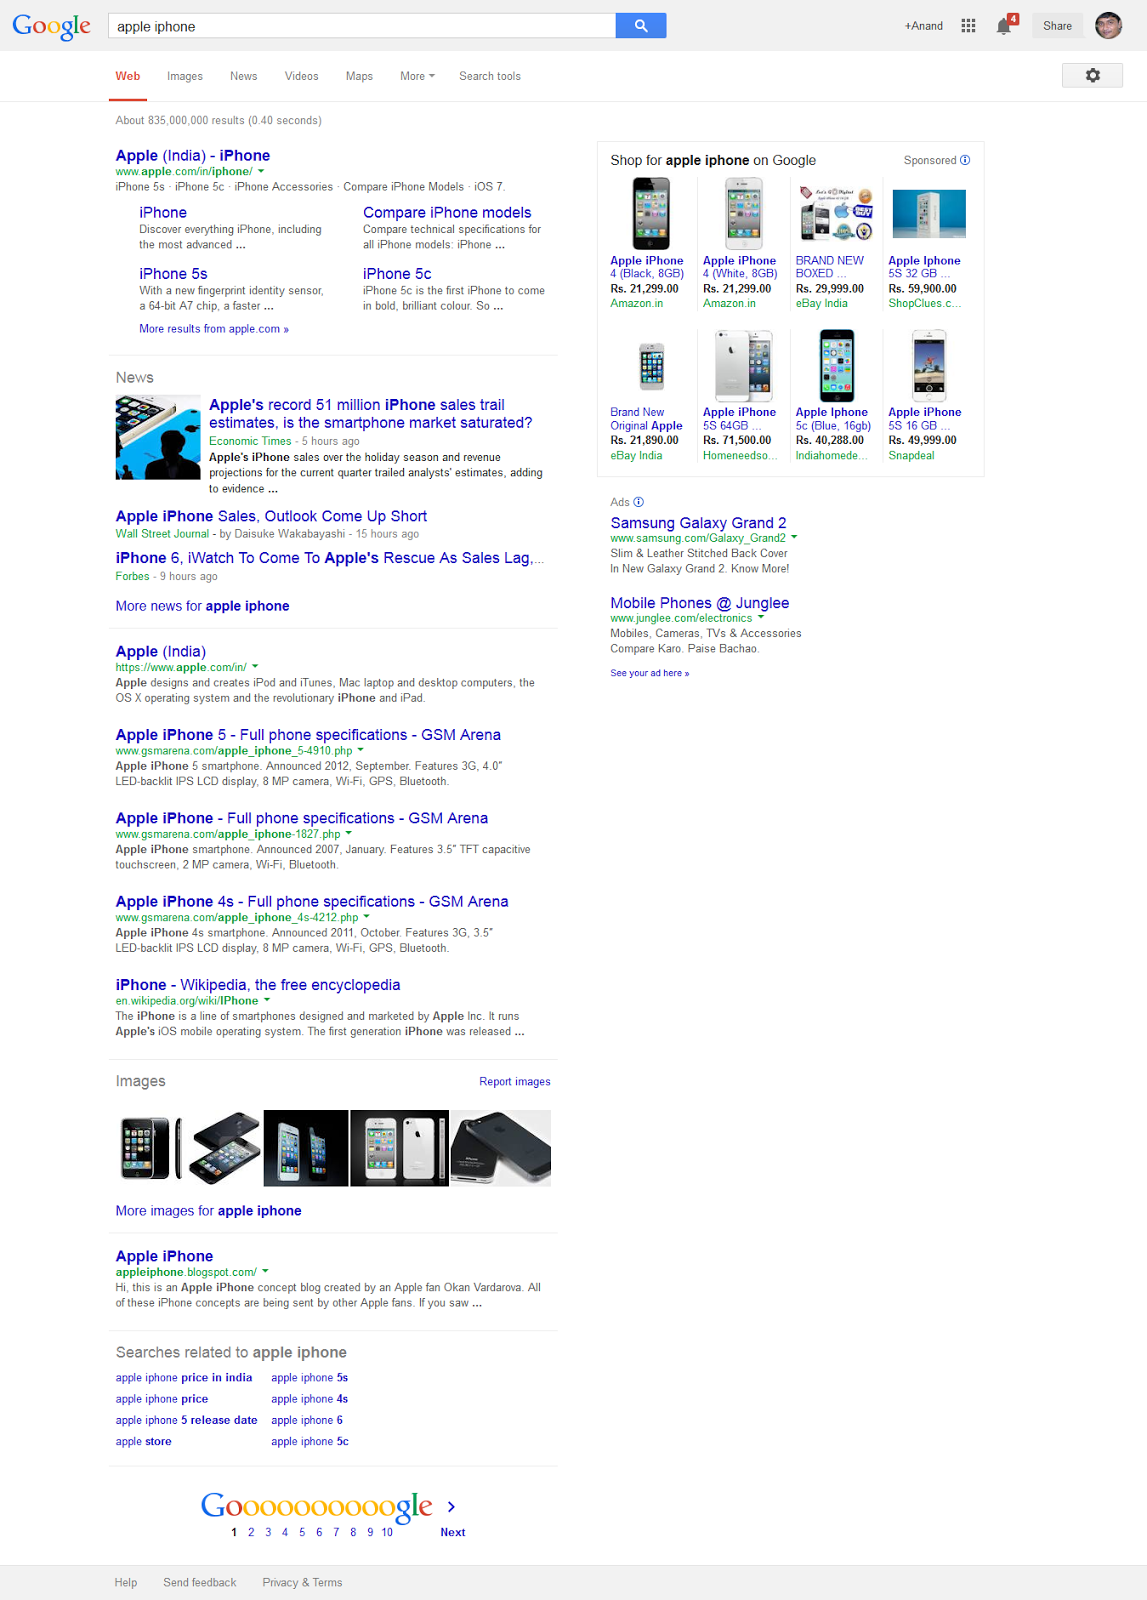 Google Search Result Page with Google Shopping Products